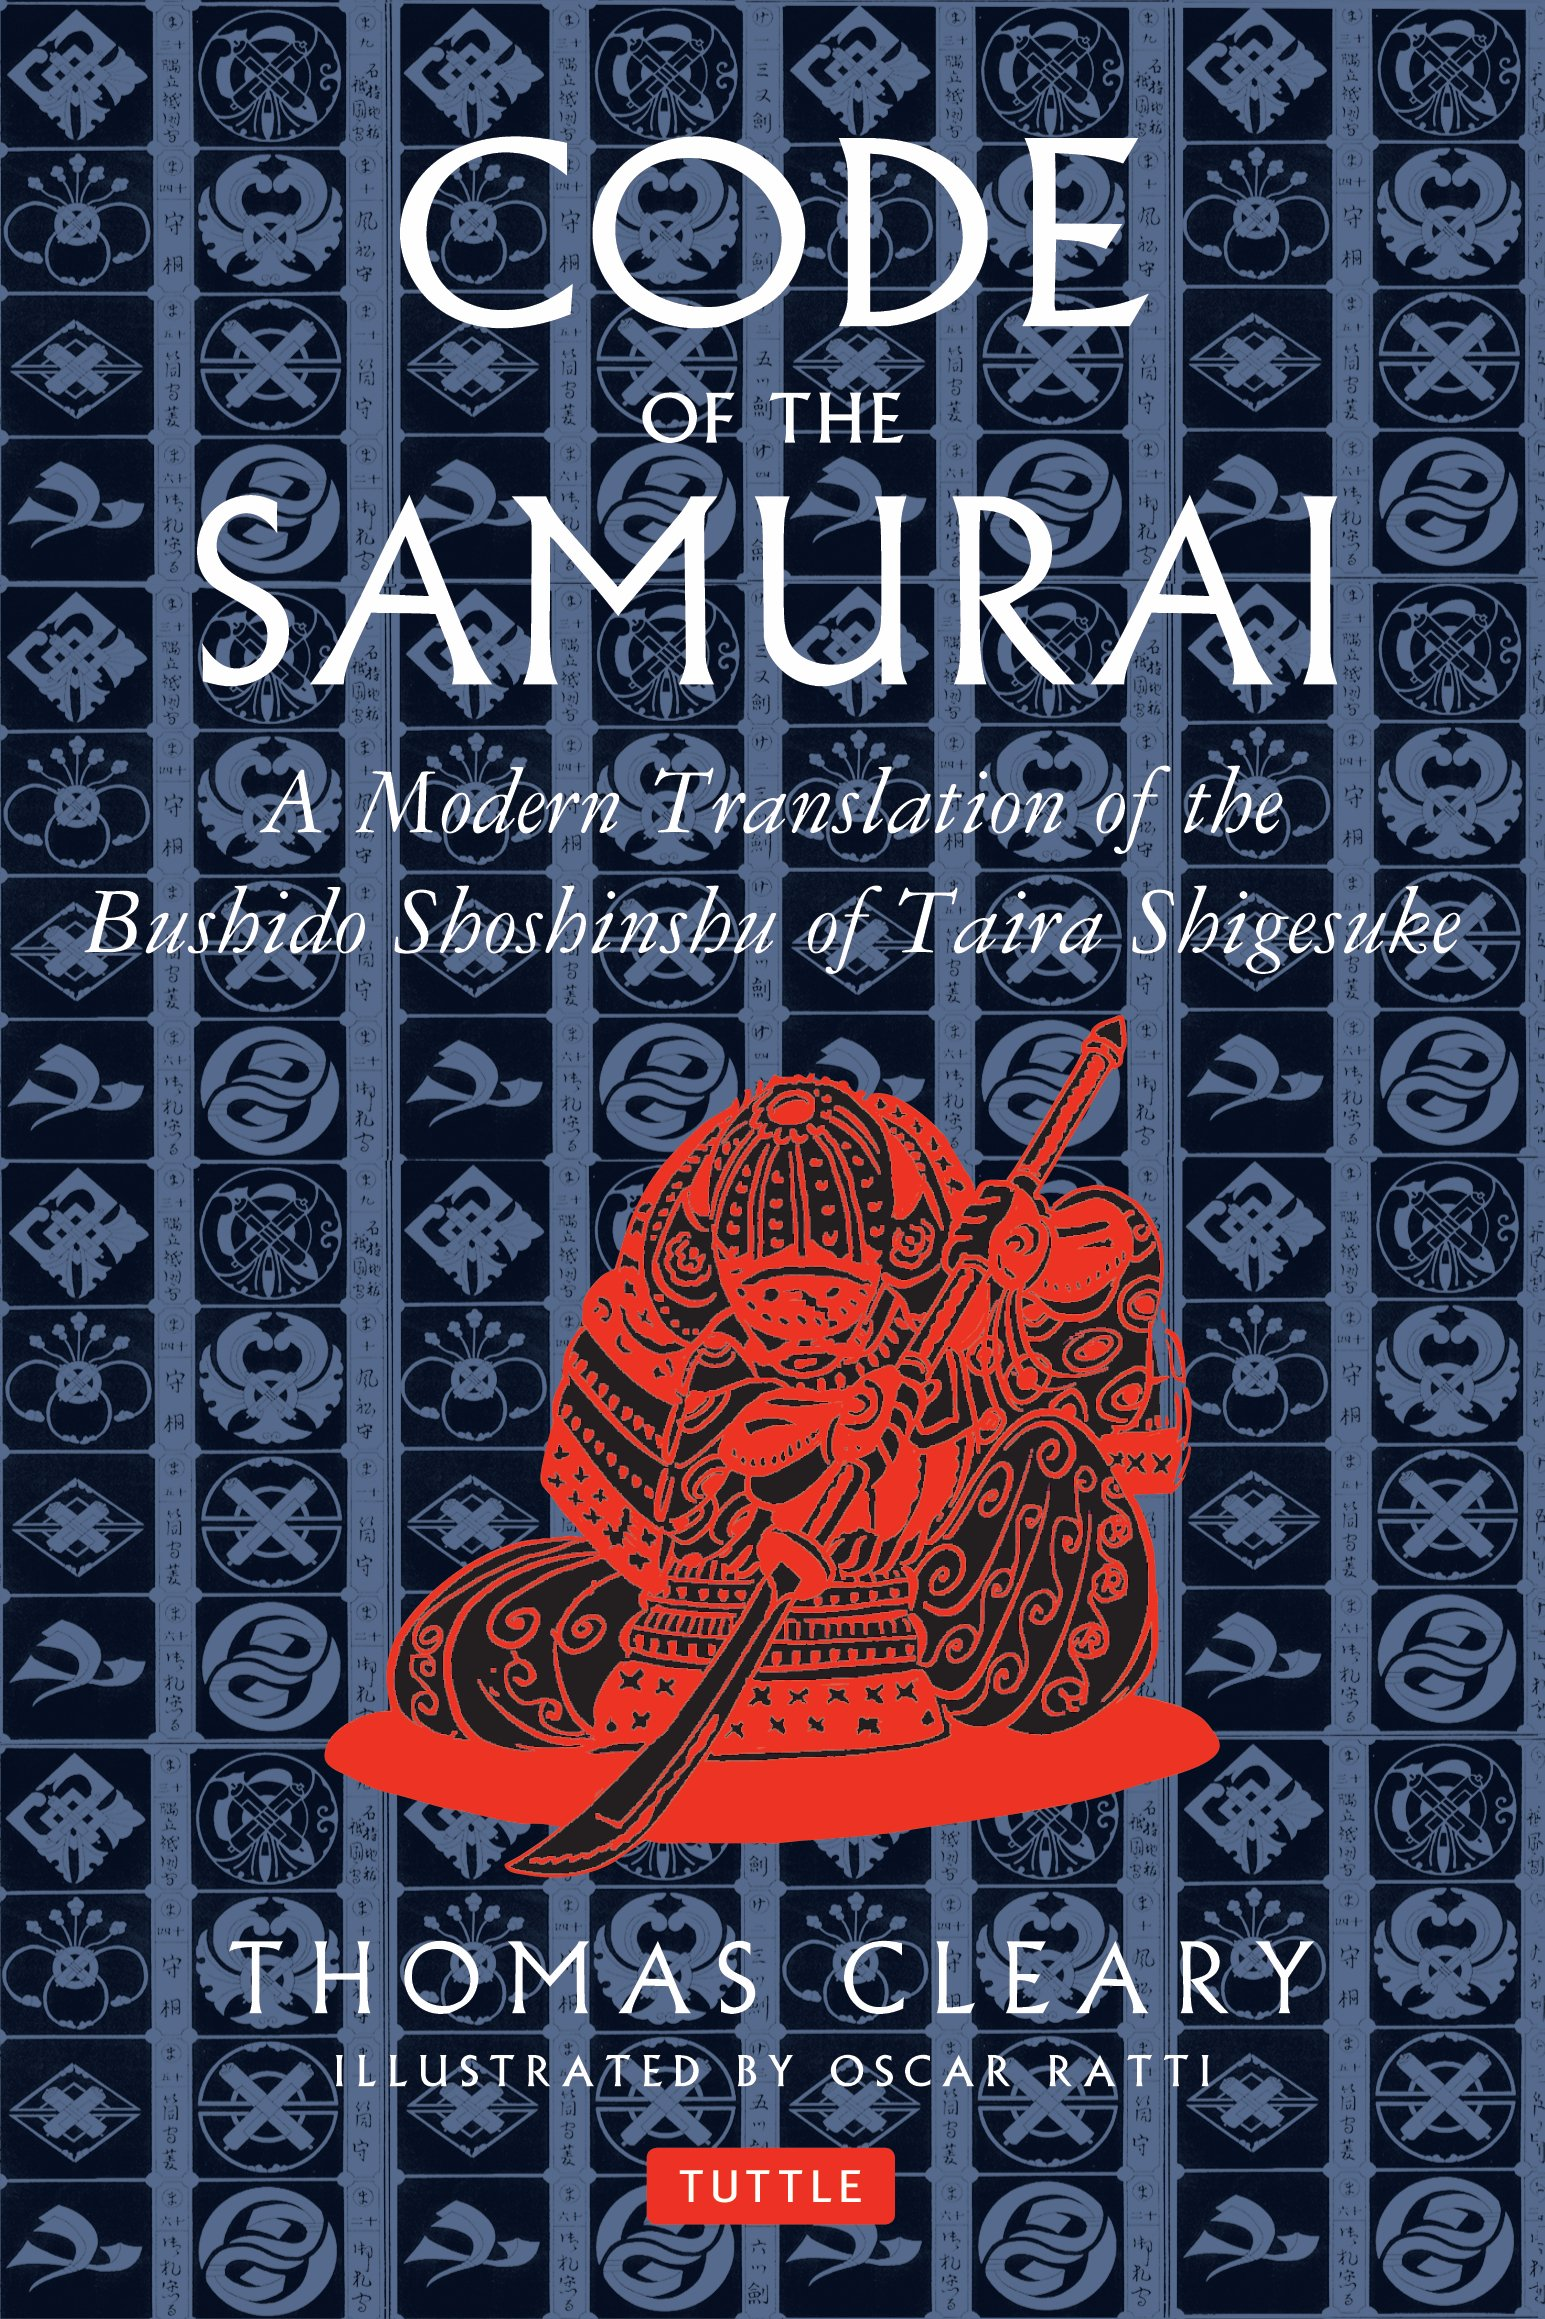 Code Of The Samurai A Modern Translation Bushido Shoshinshu